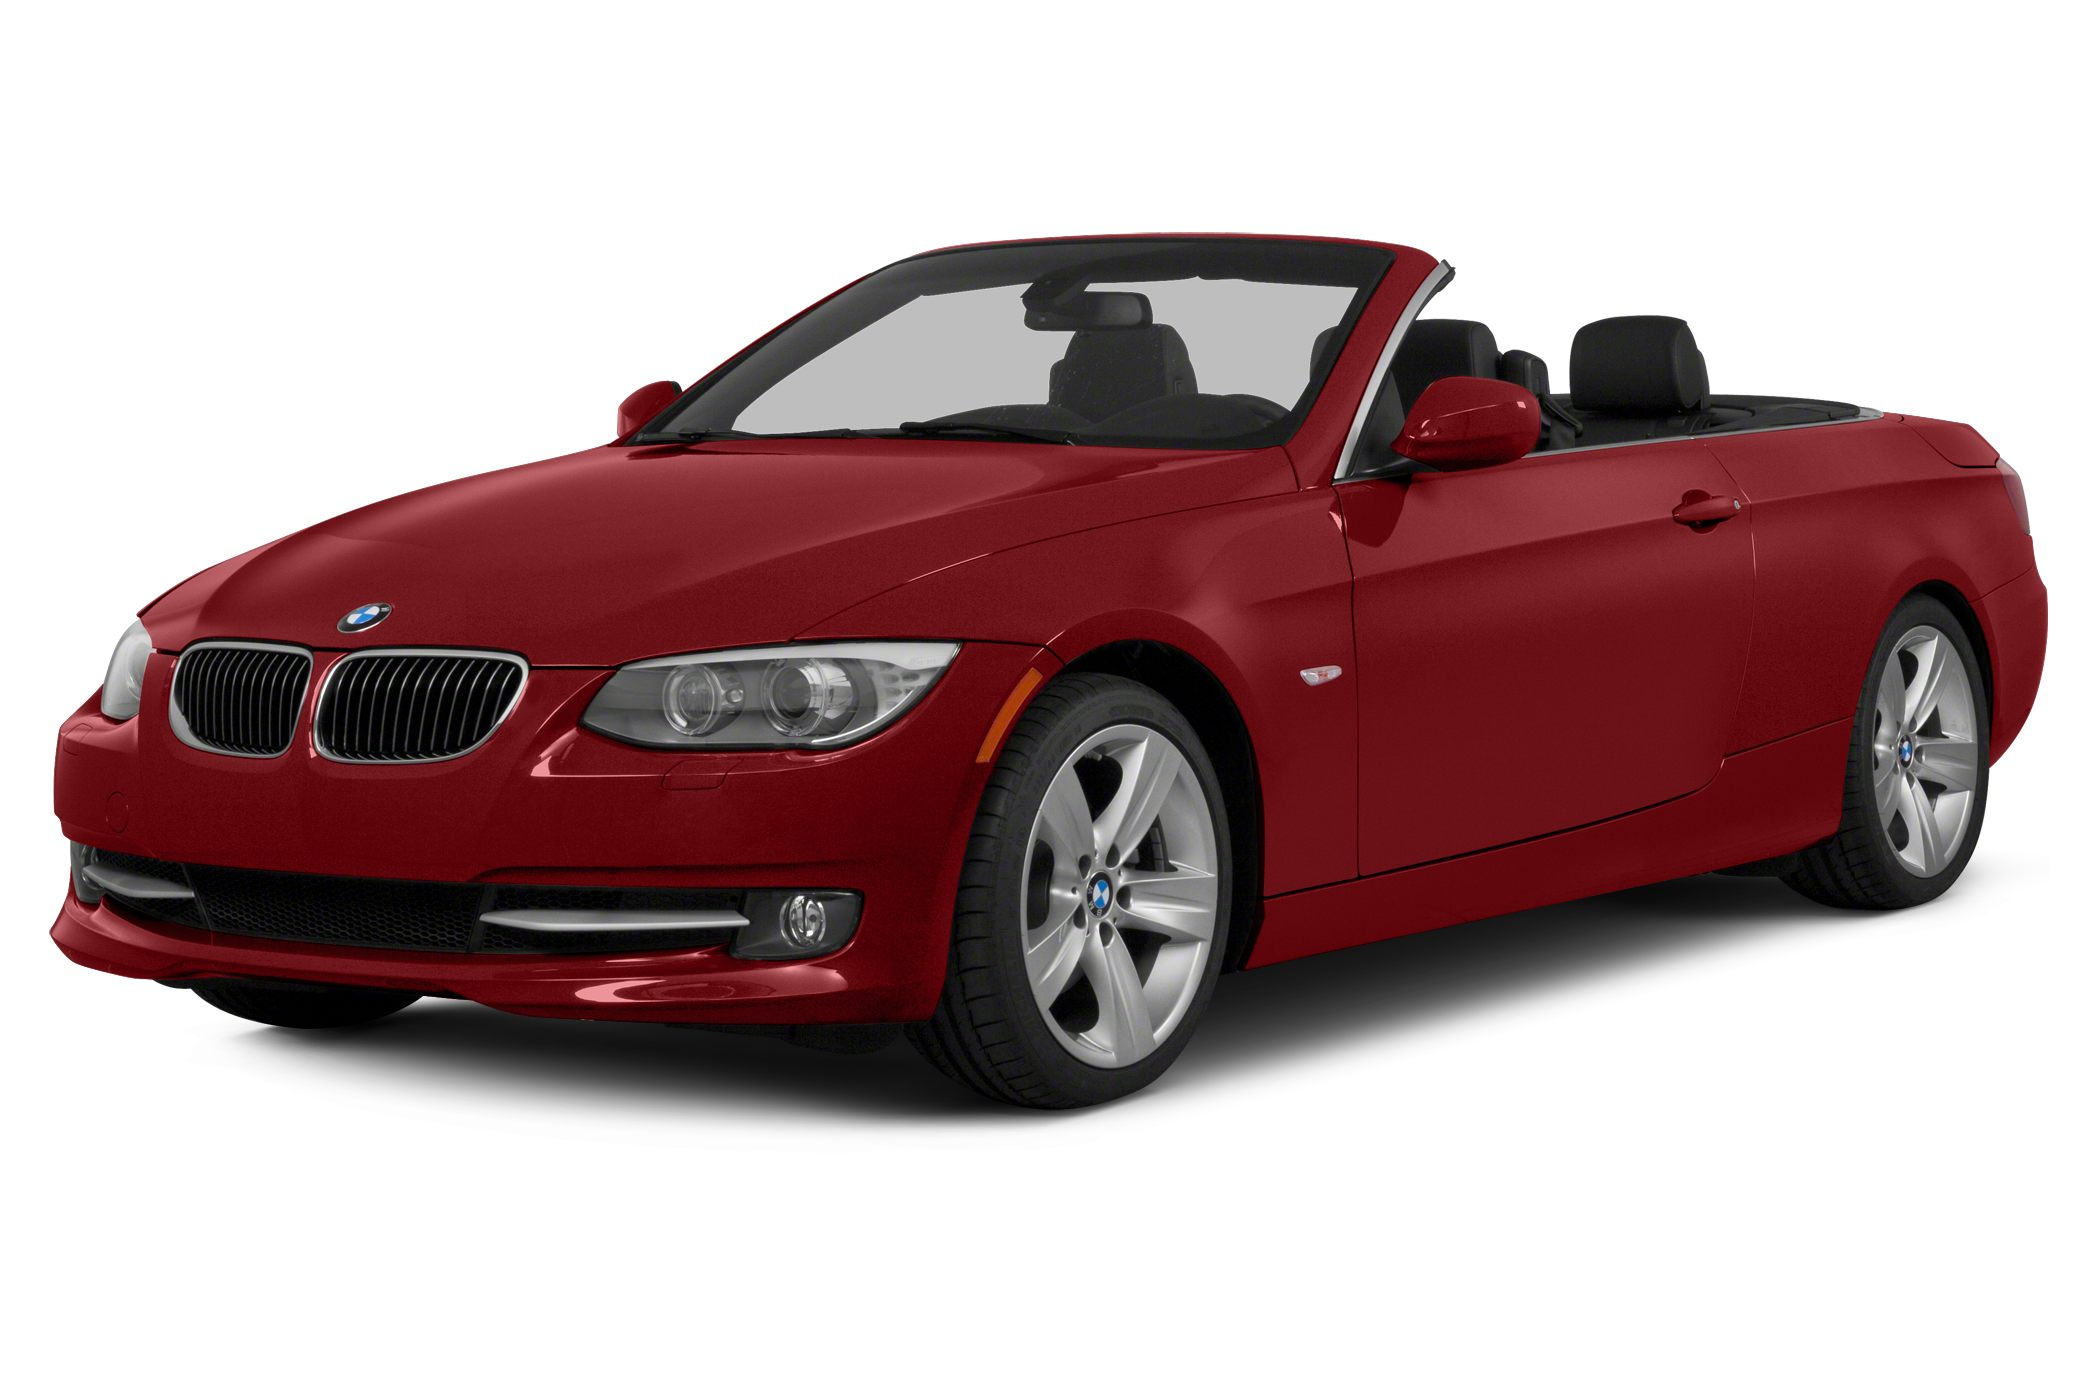 2013 BMW 335 is 2dr Rear wheel Drive Convertible Specs and Prices